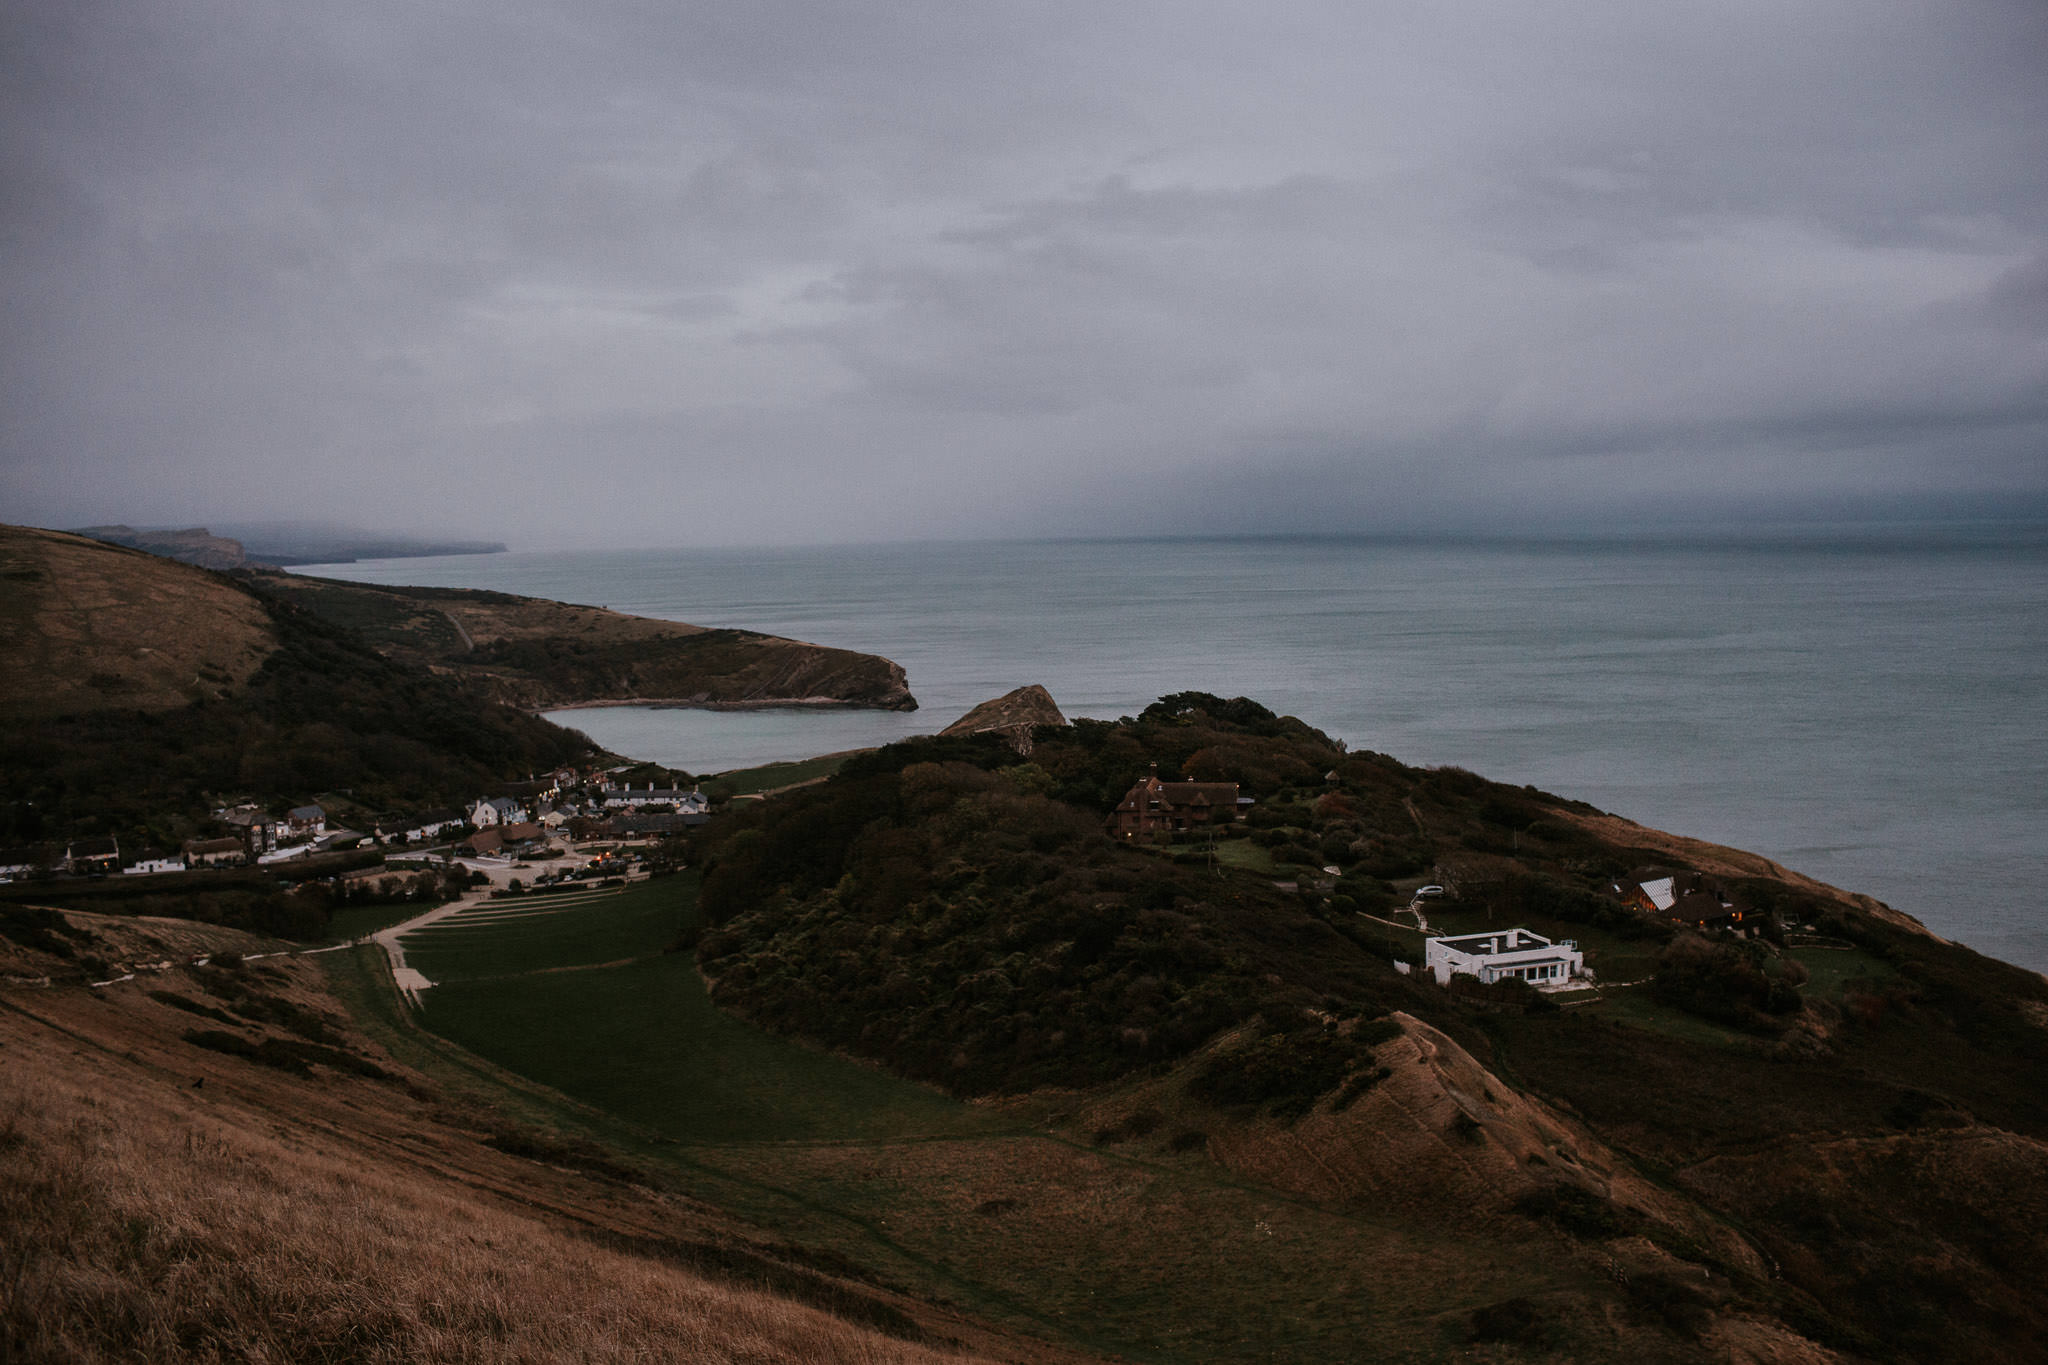 A view over Lulworth Cove on an overcast evening